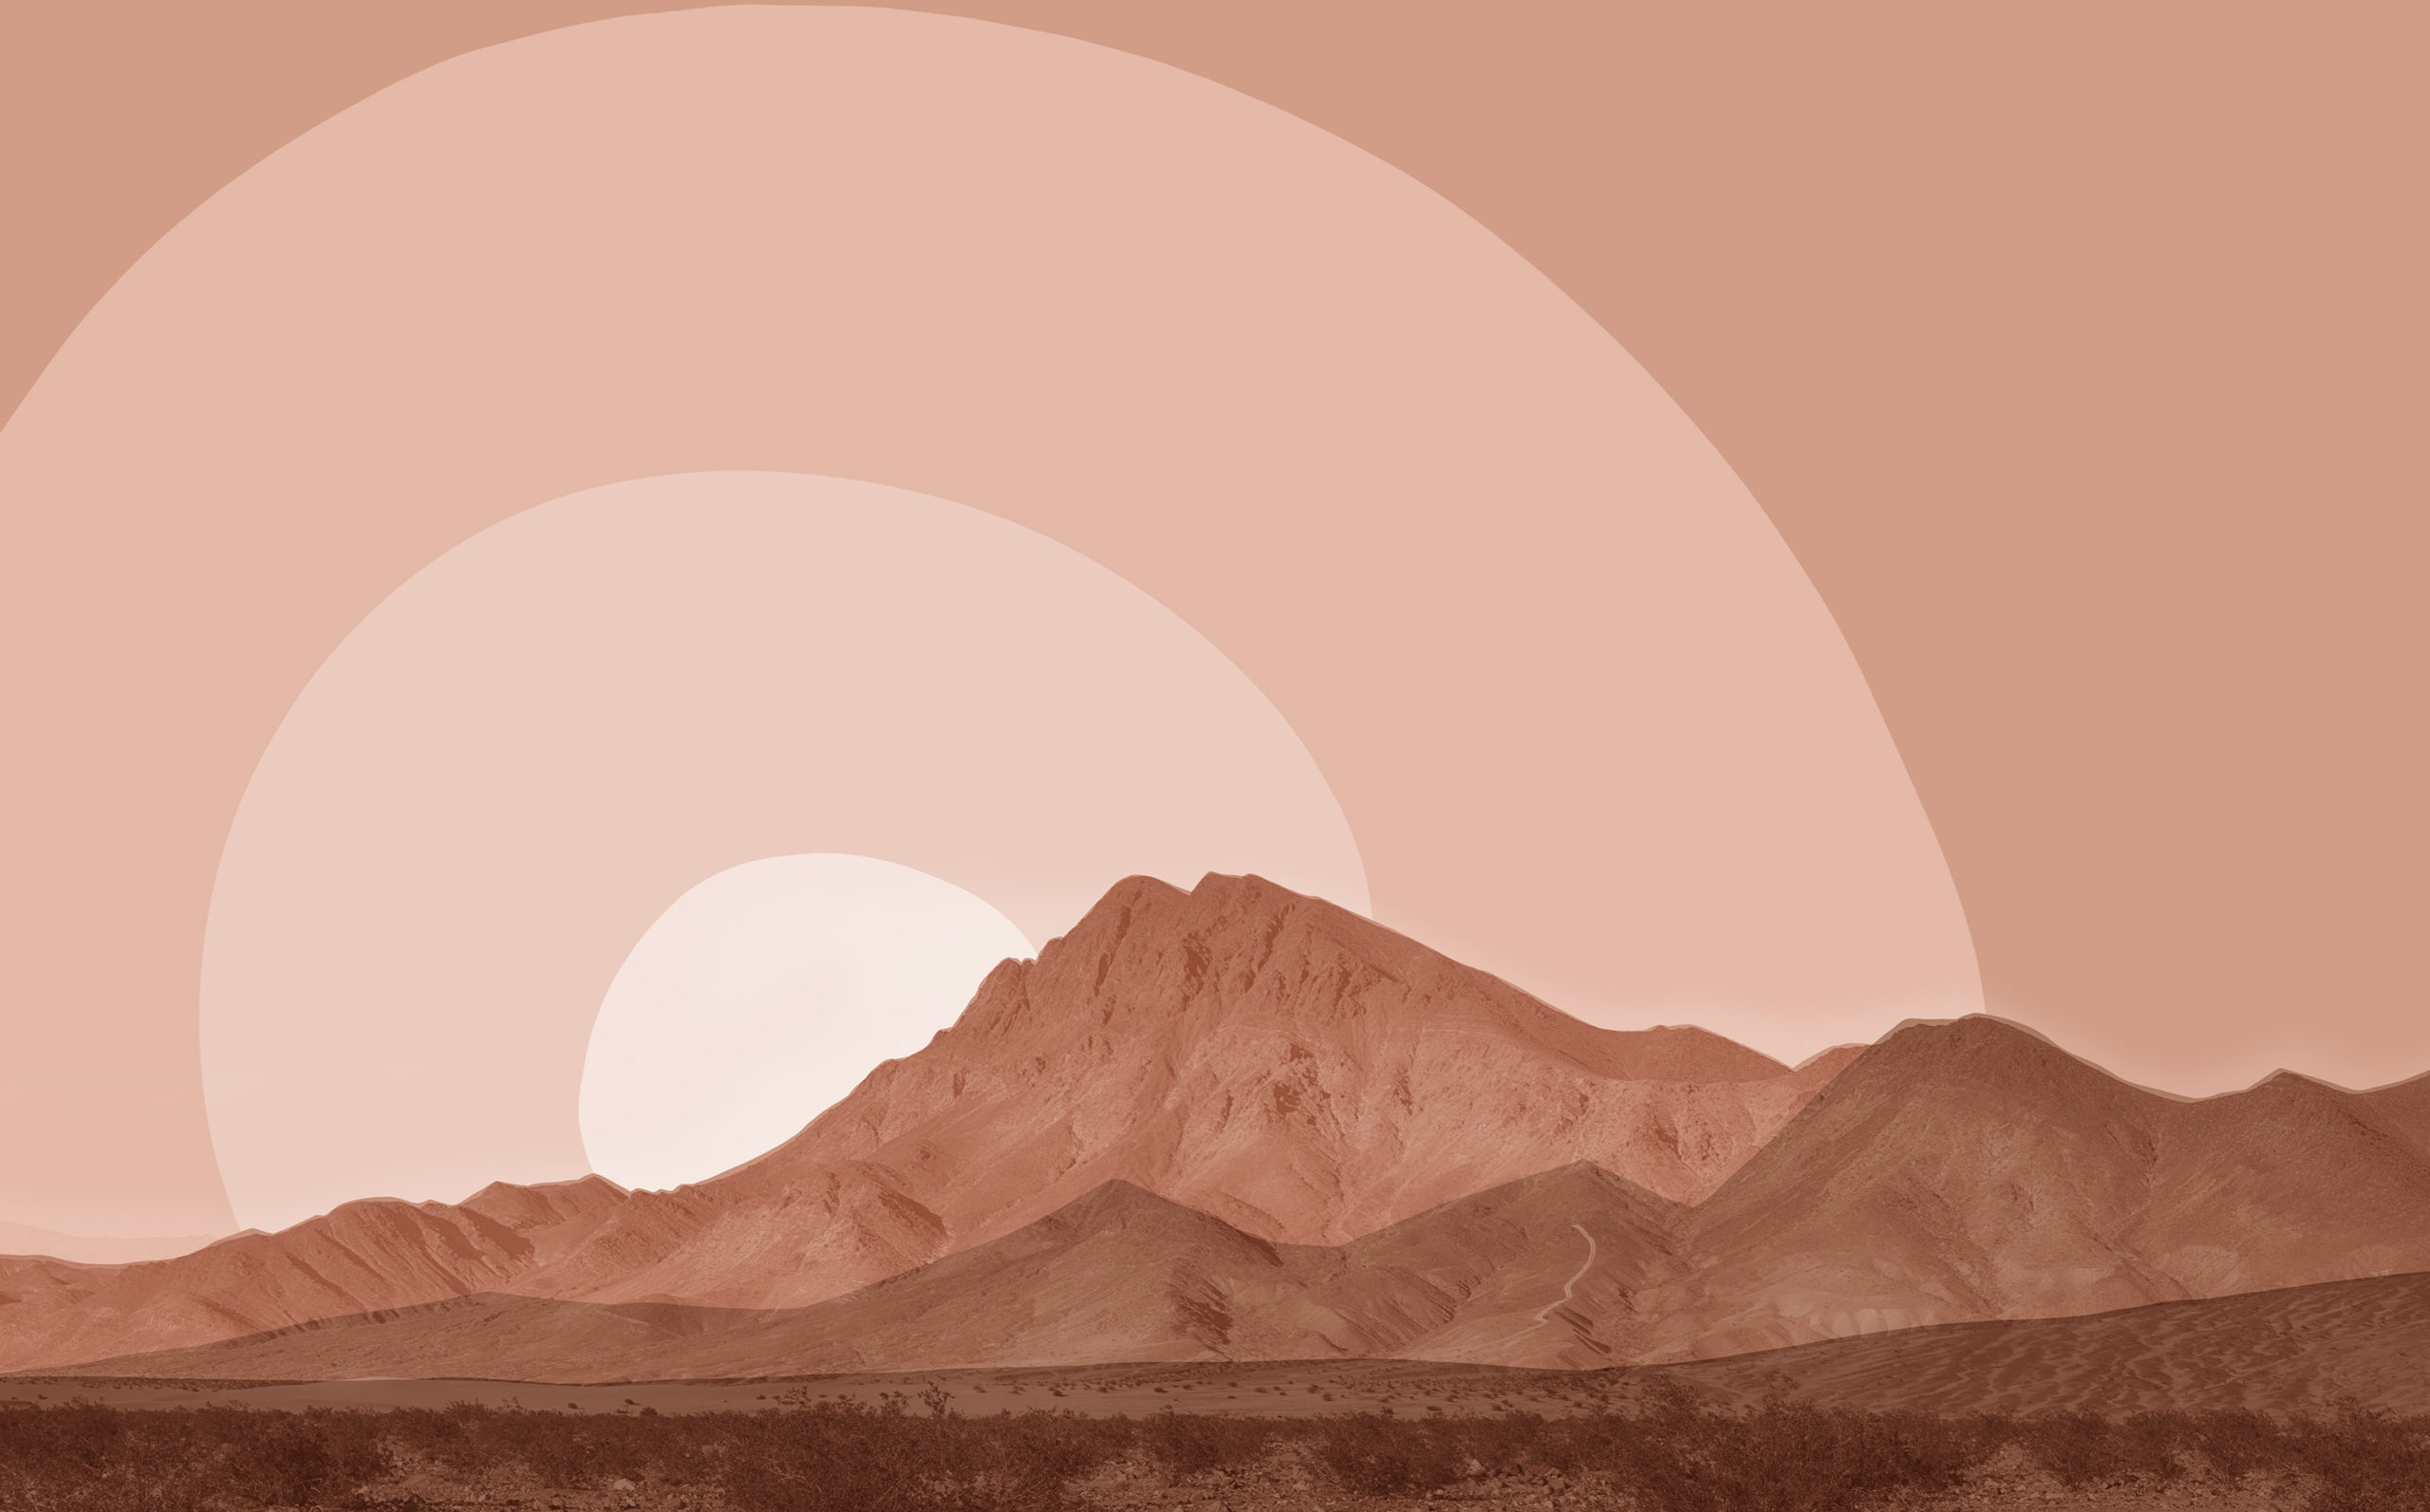 Burden of Depression - Photo collage of a mountain composed of brown shades